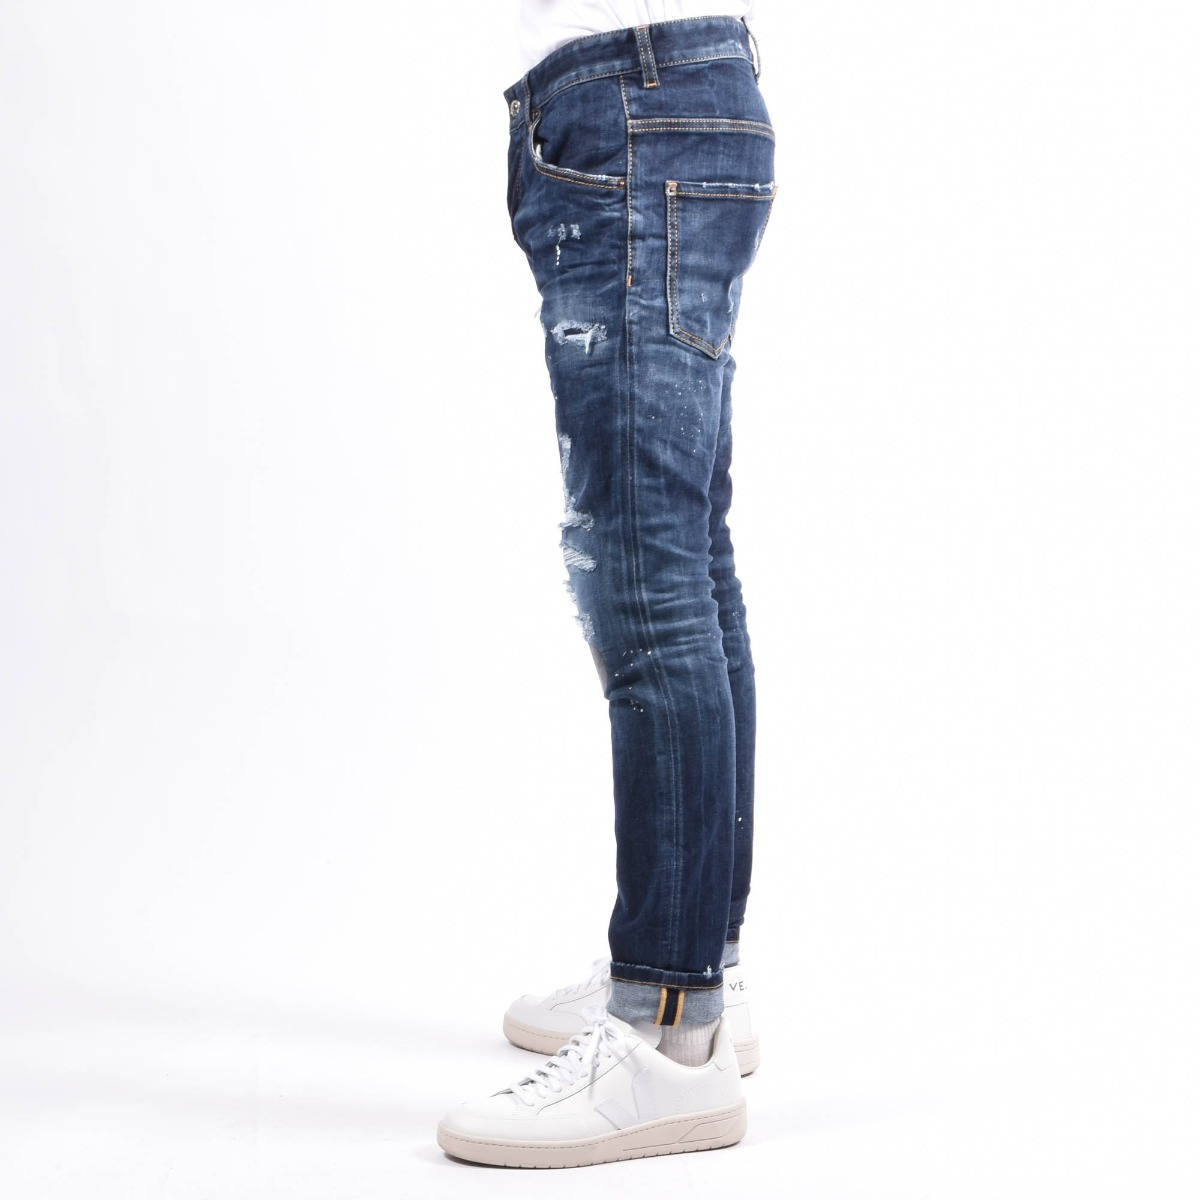 Jeans skater- Denim medio